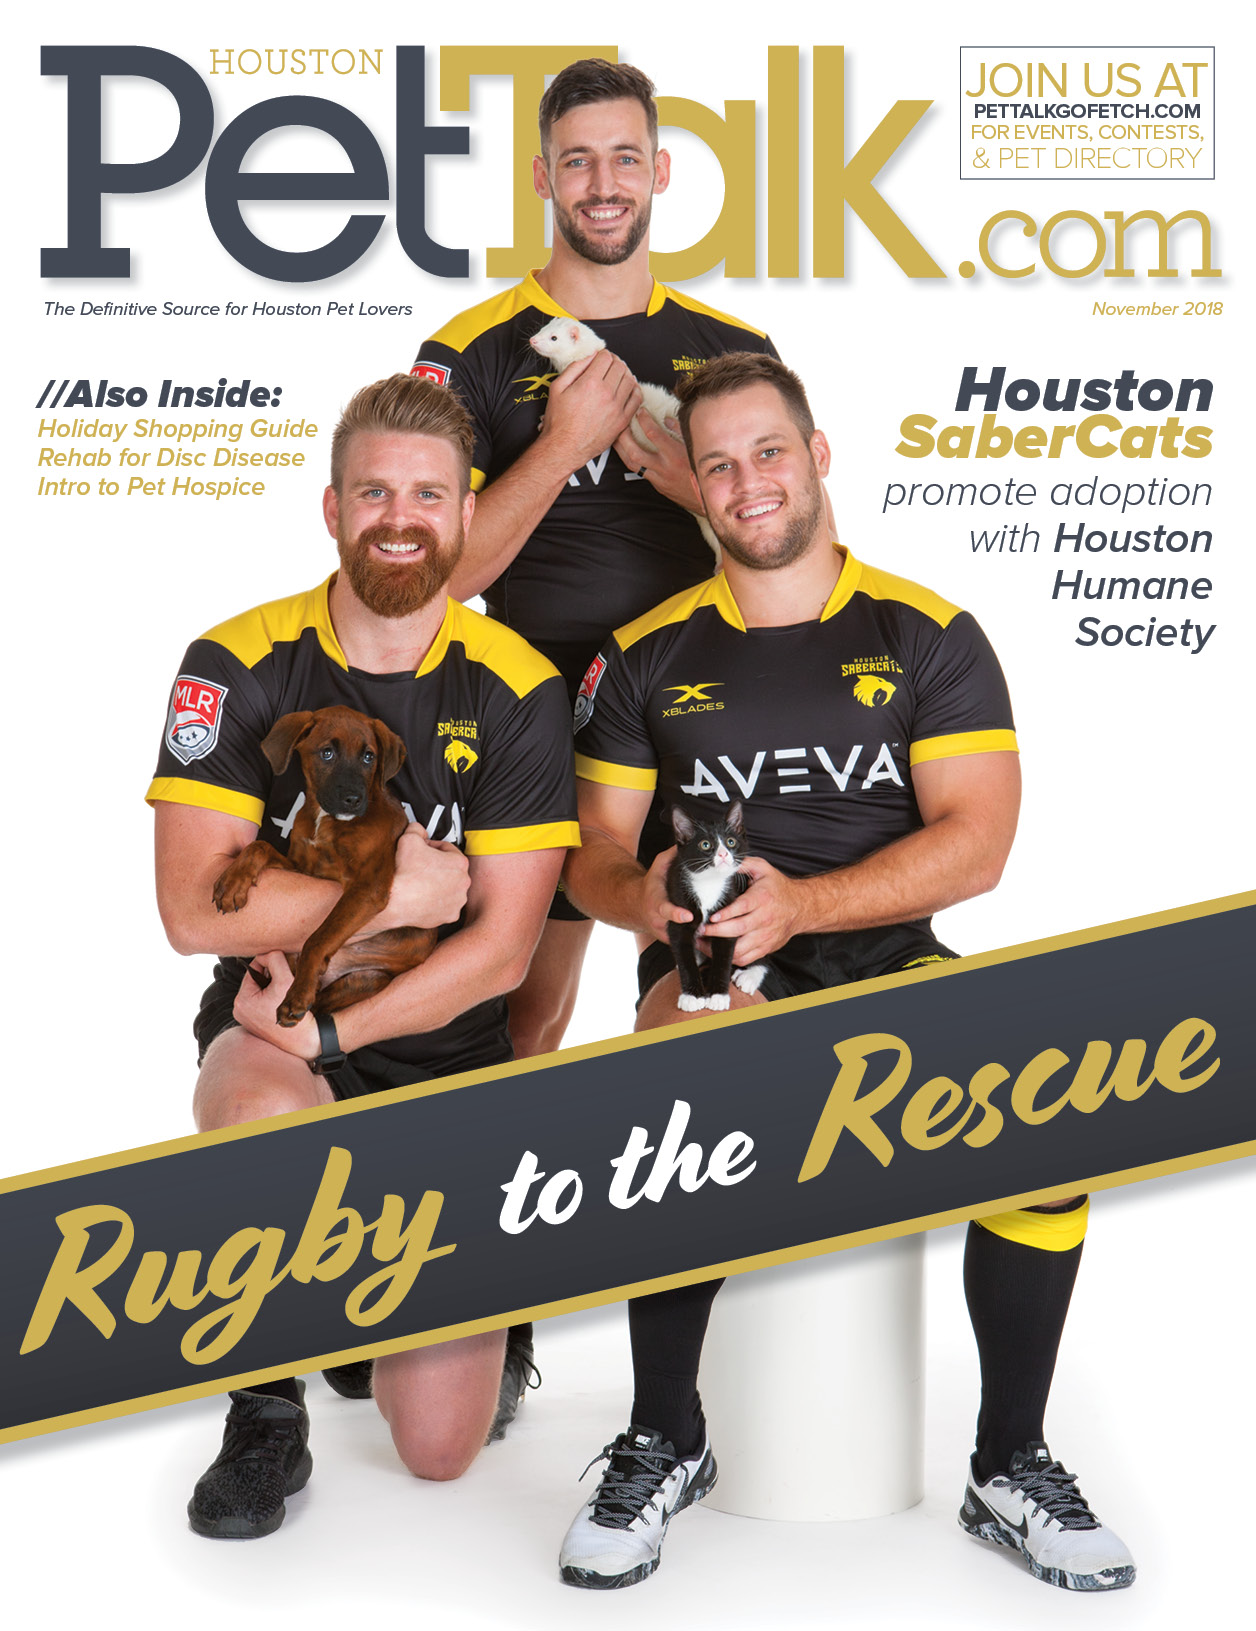 November 2018 Digital Issue of Houston PetTalk